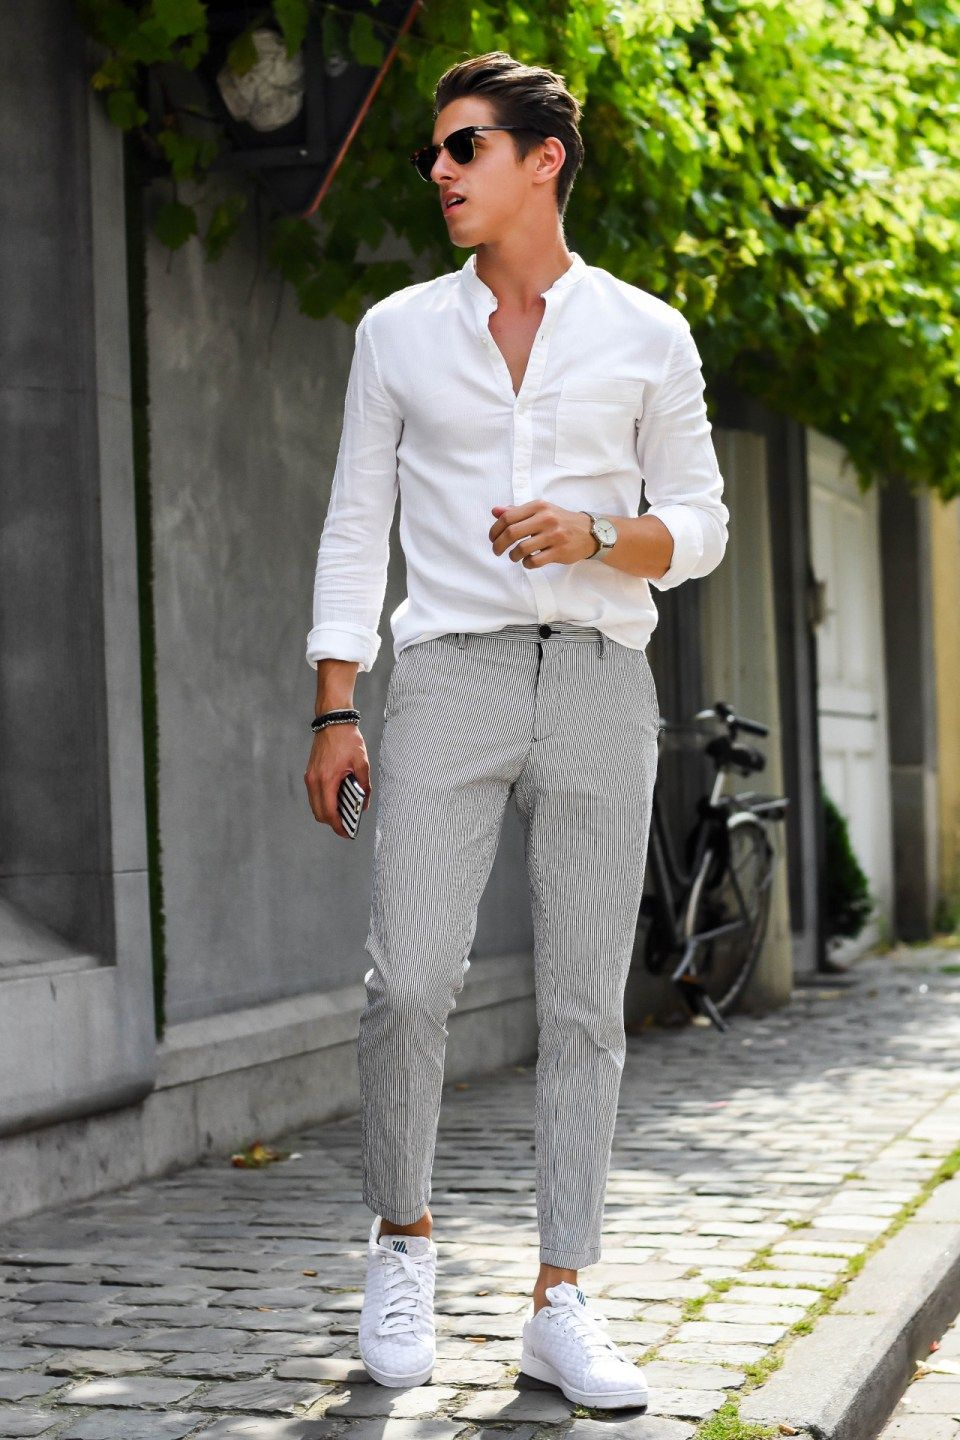 5 last minute new year outfit ideas for men | | men's fashion